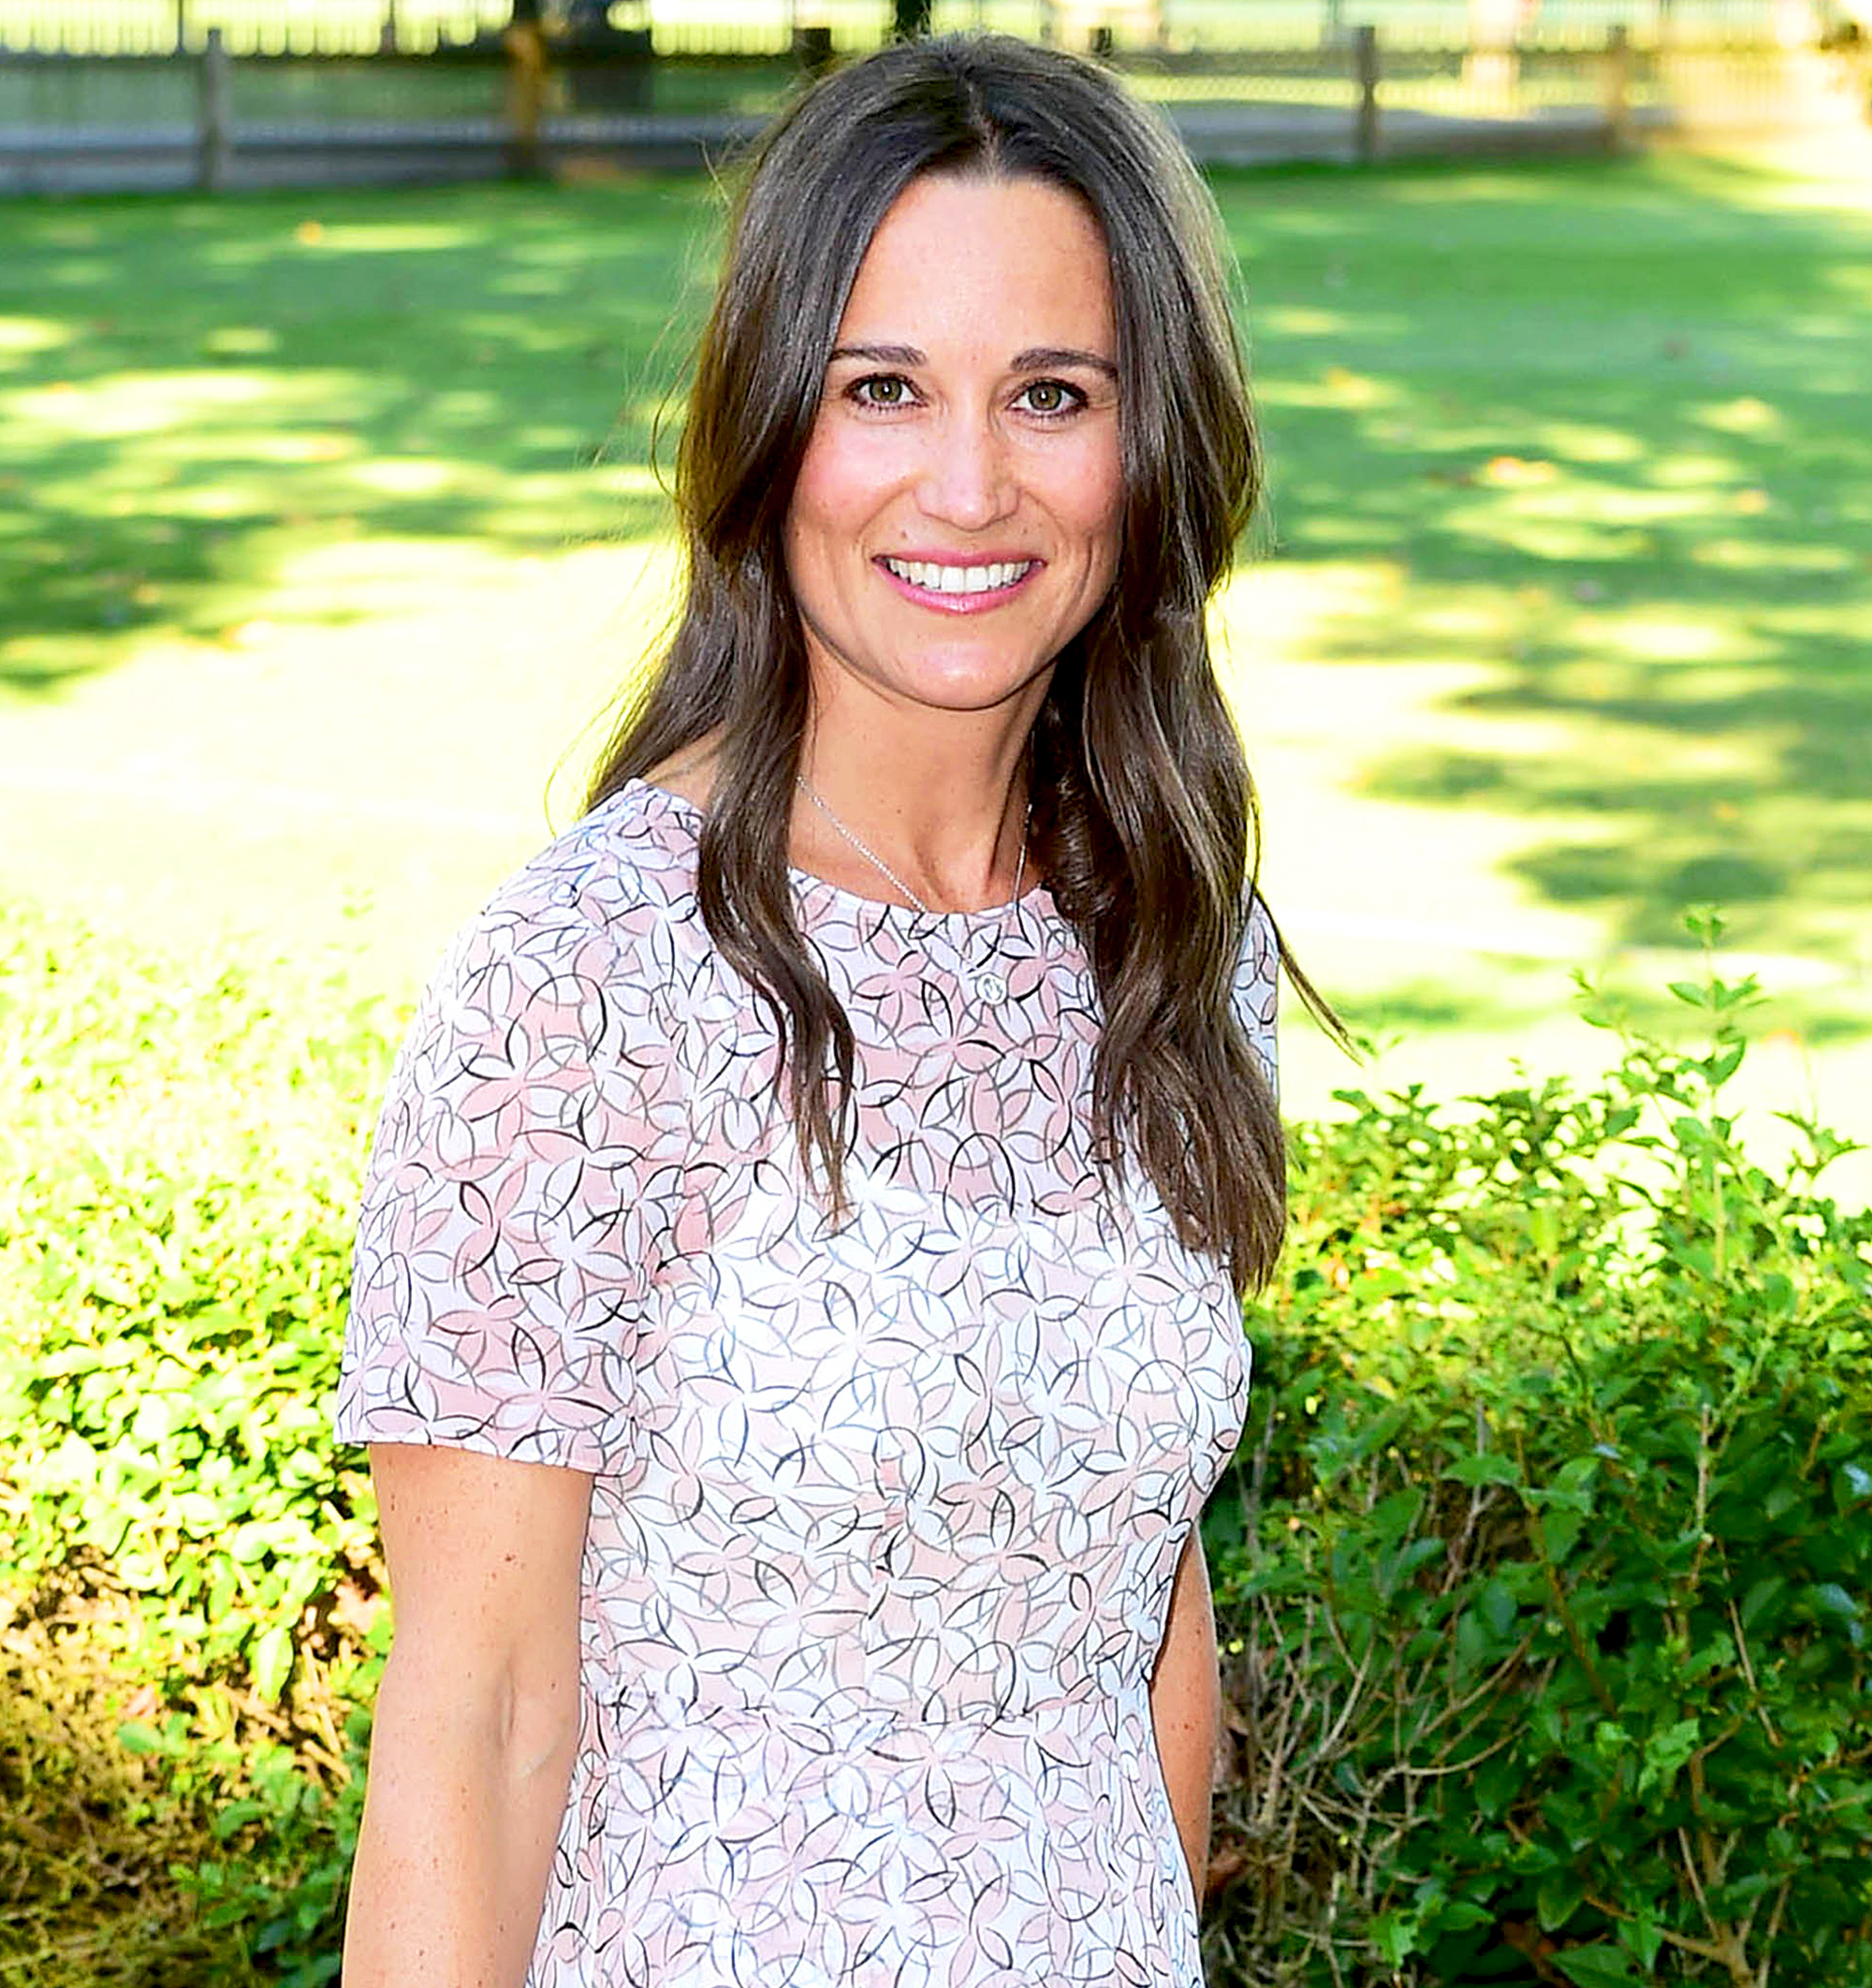 Baby on the way: Princess Kate's sister, Pippa Middleton, is pregnant